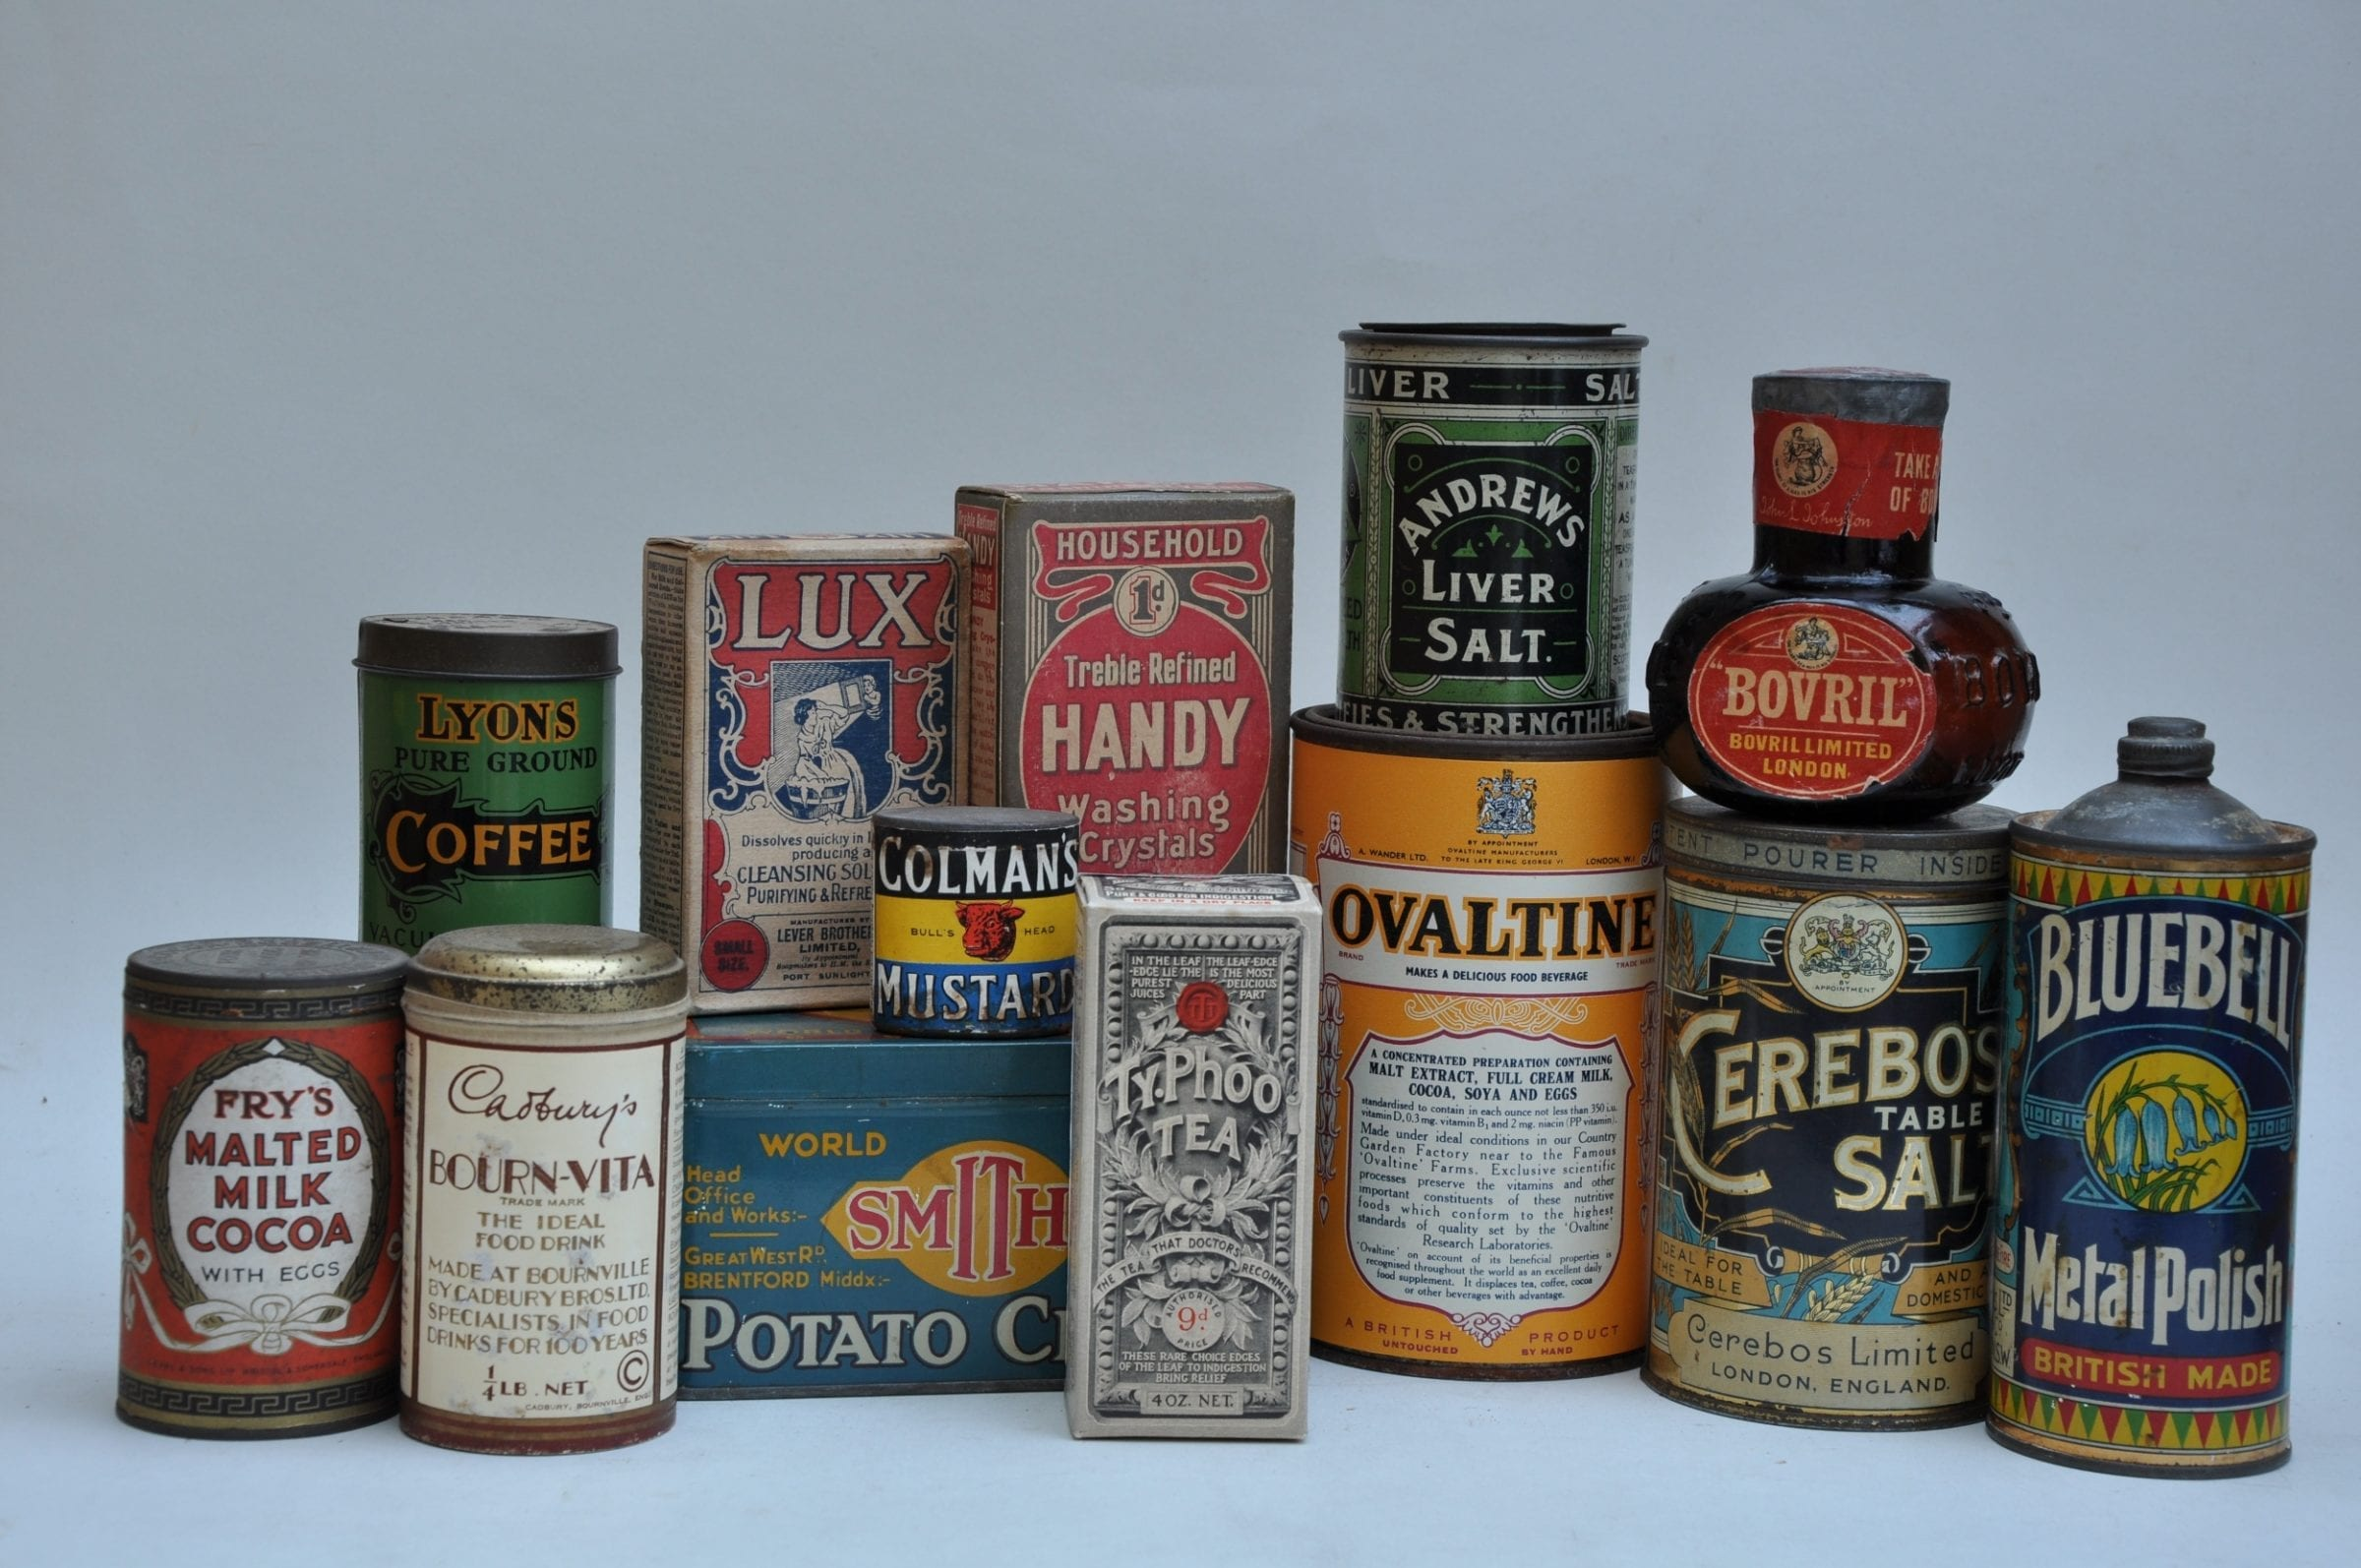 Classic Pack Designd from Edwardian times to 1930s